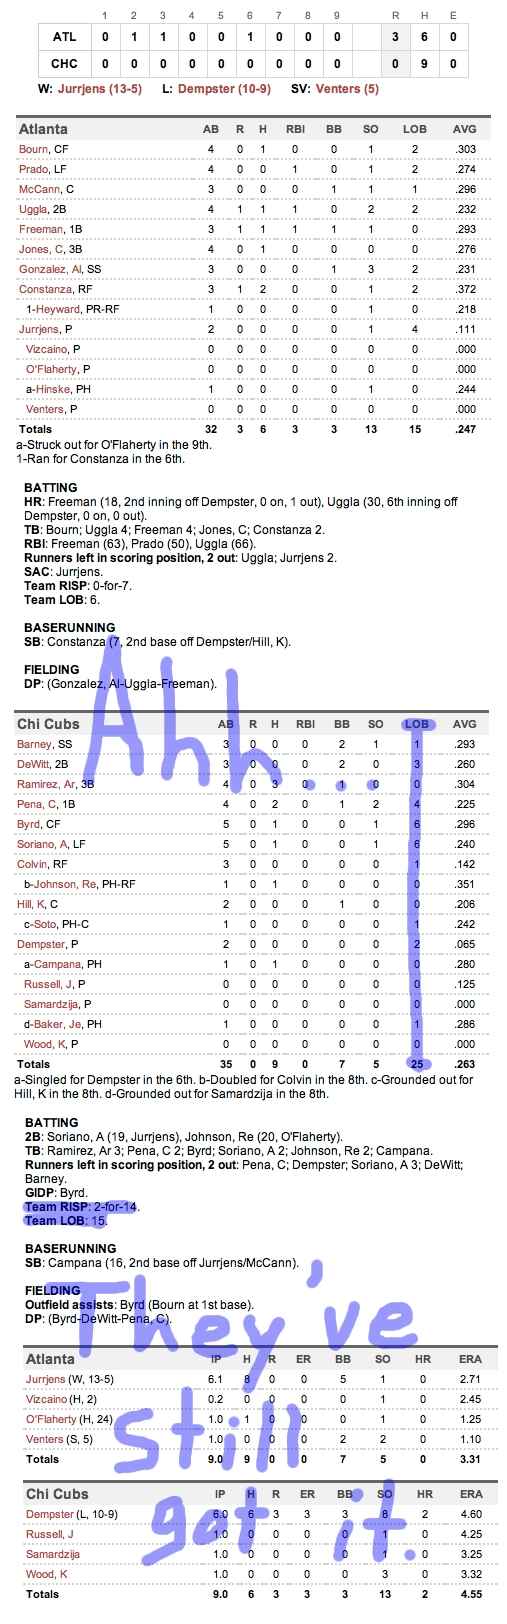 Enhanced Box Score: Braves 3, Cubs 0 – August 22, 2011